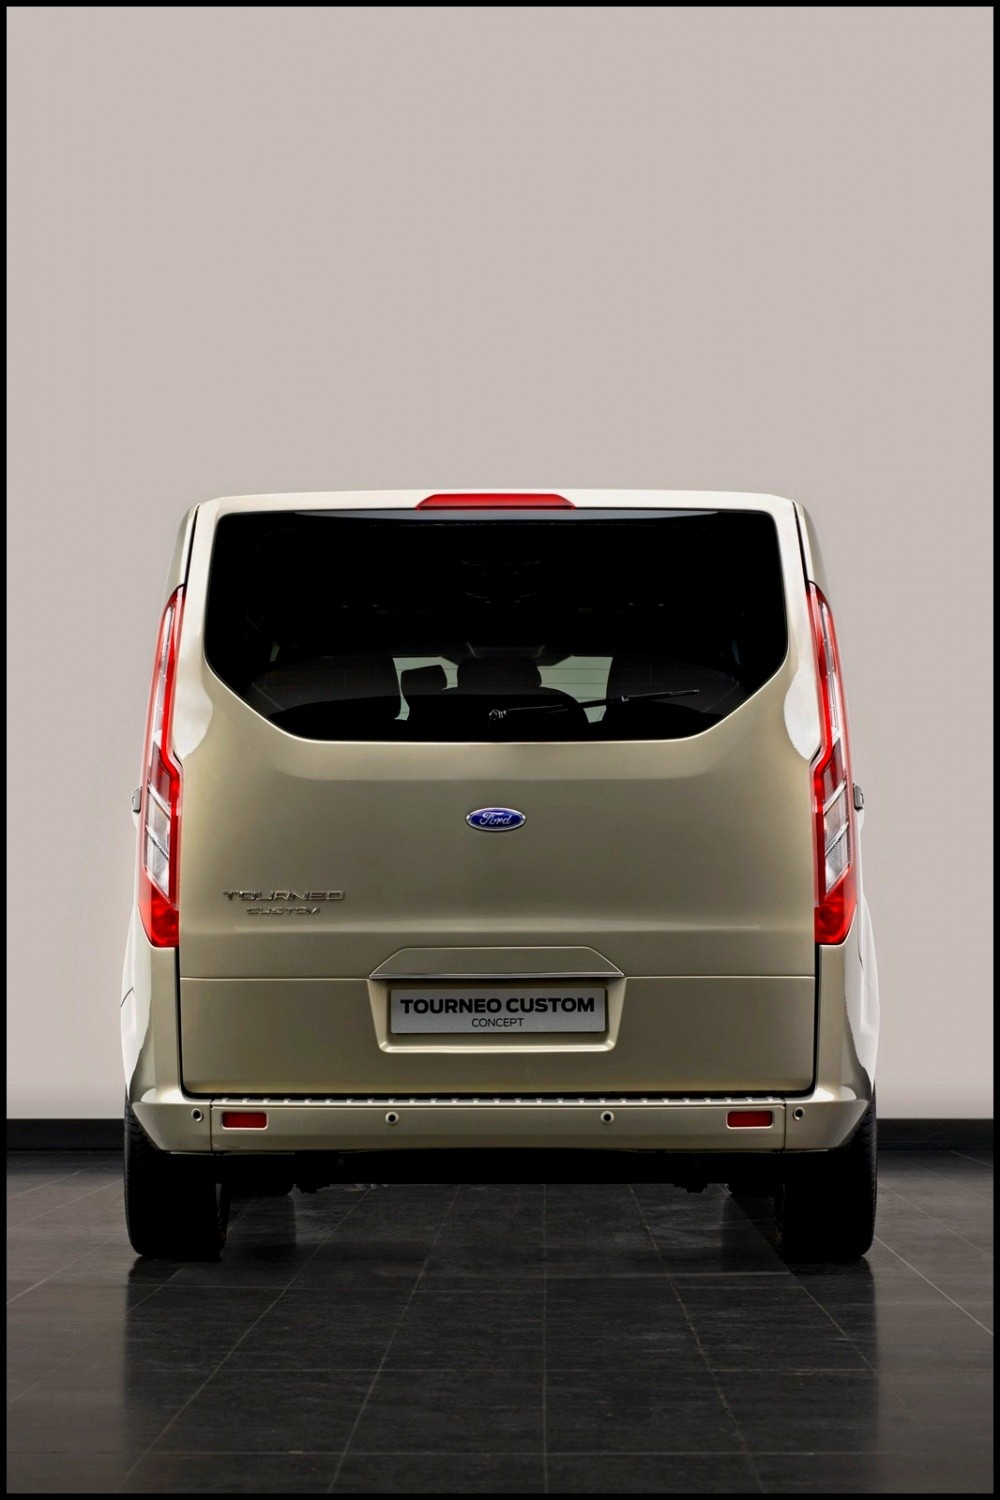 2012 ford tourneo custom concept. Black Bedroom Furniture Sets. Home Design Ideas